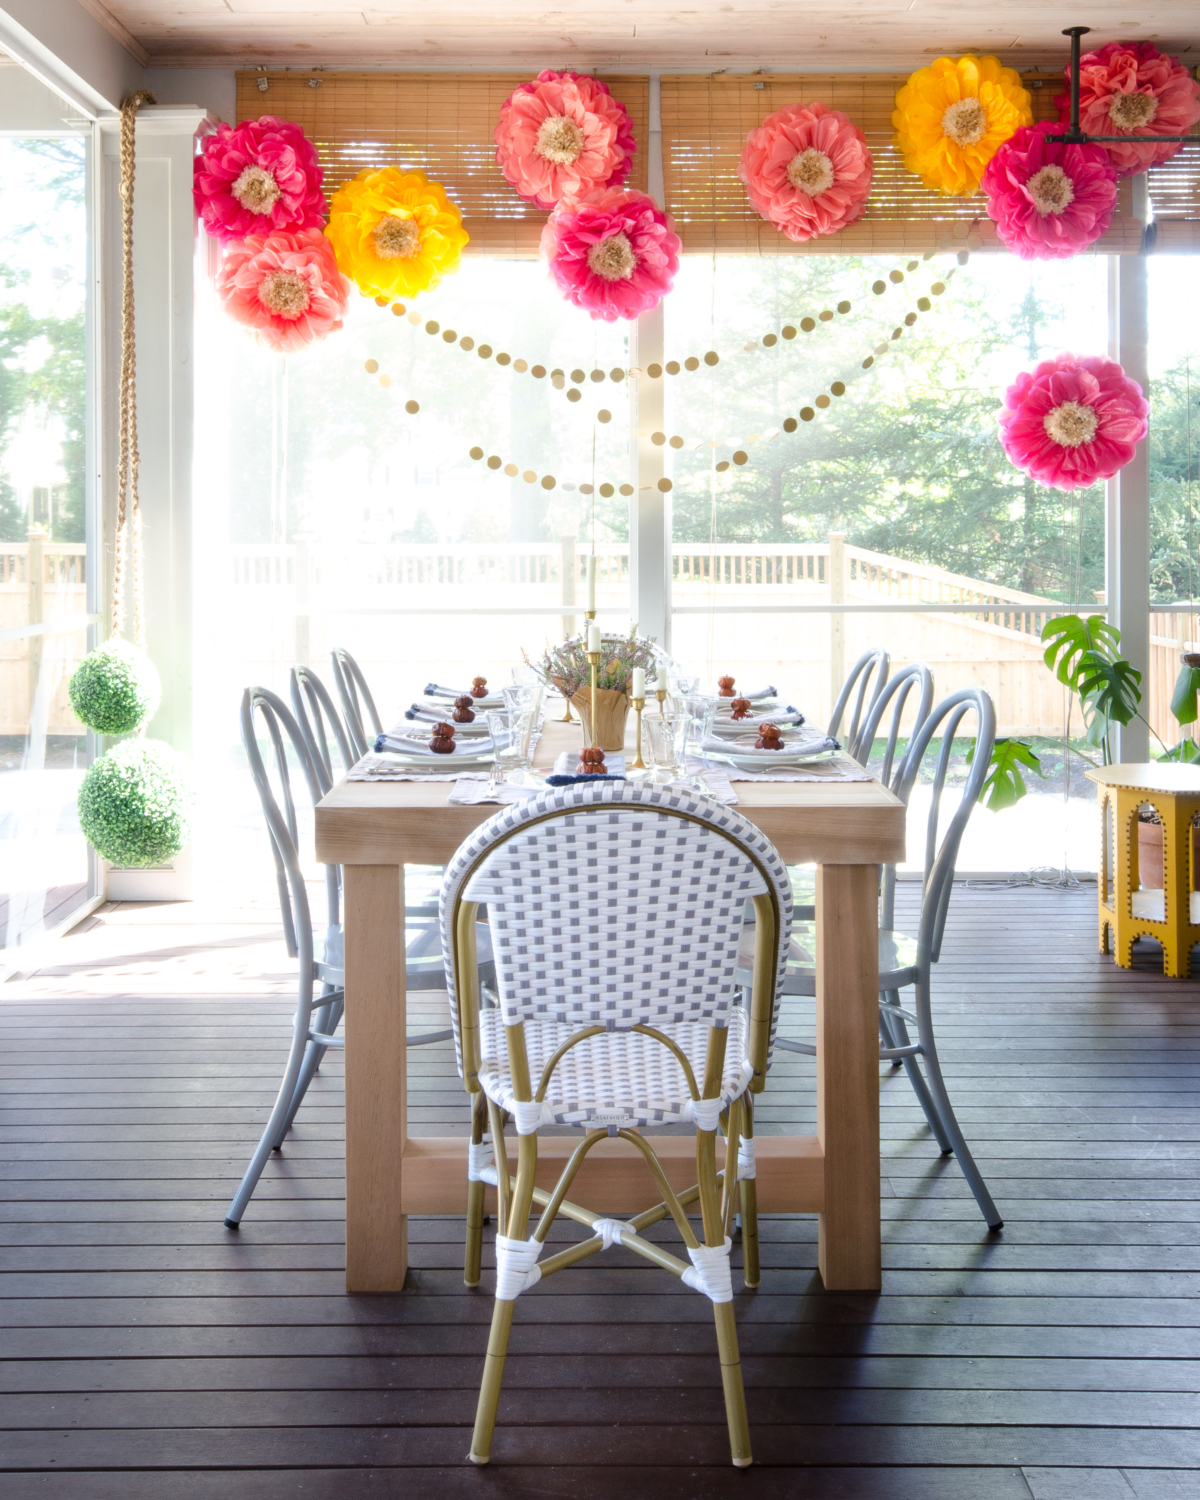 Fall outdoor dinner party with paper flowers, gold circle garlands, and a simple table with mini pumpkins, brass candlesticks, and miniature flower pots.